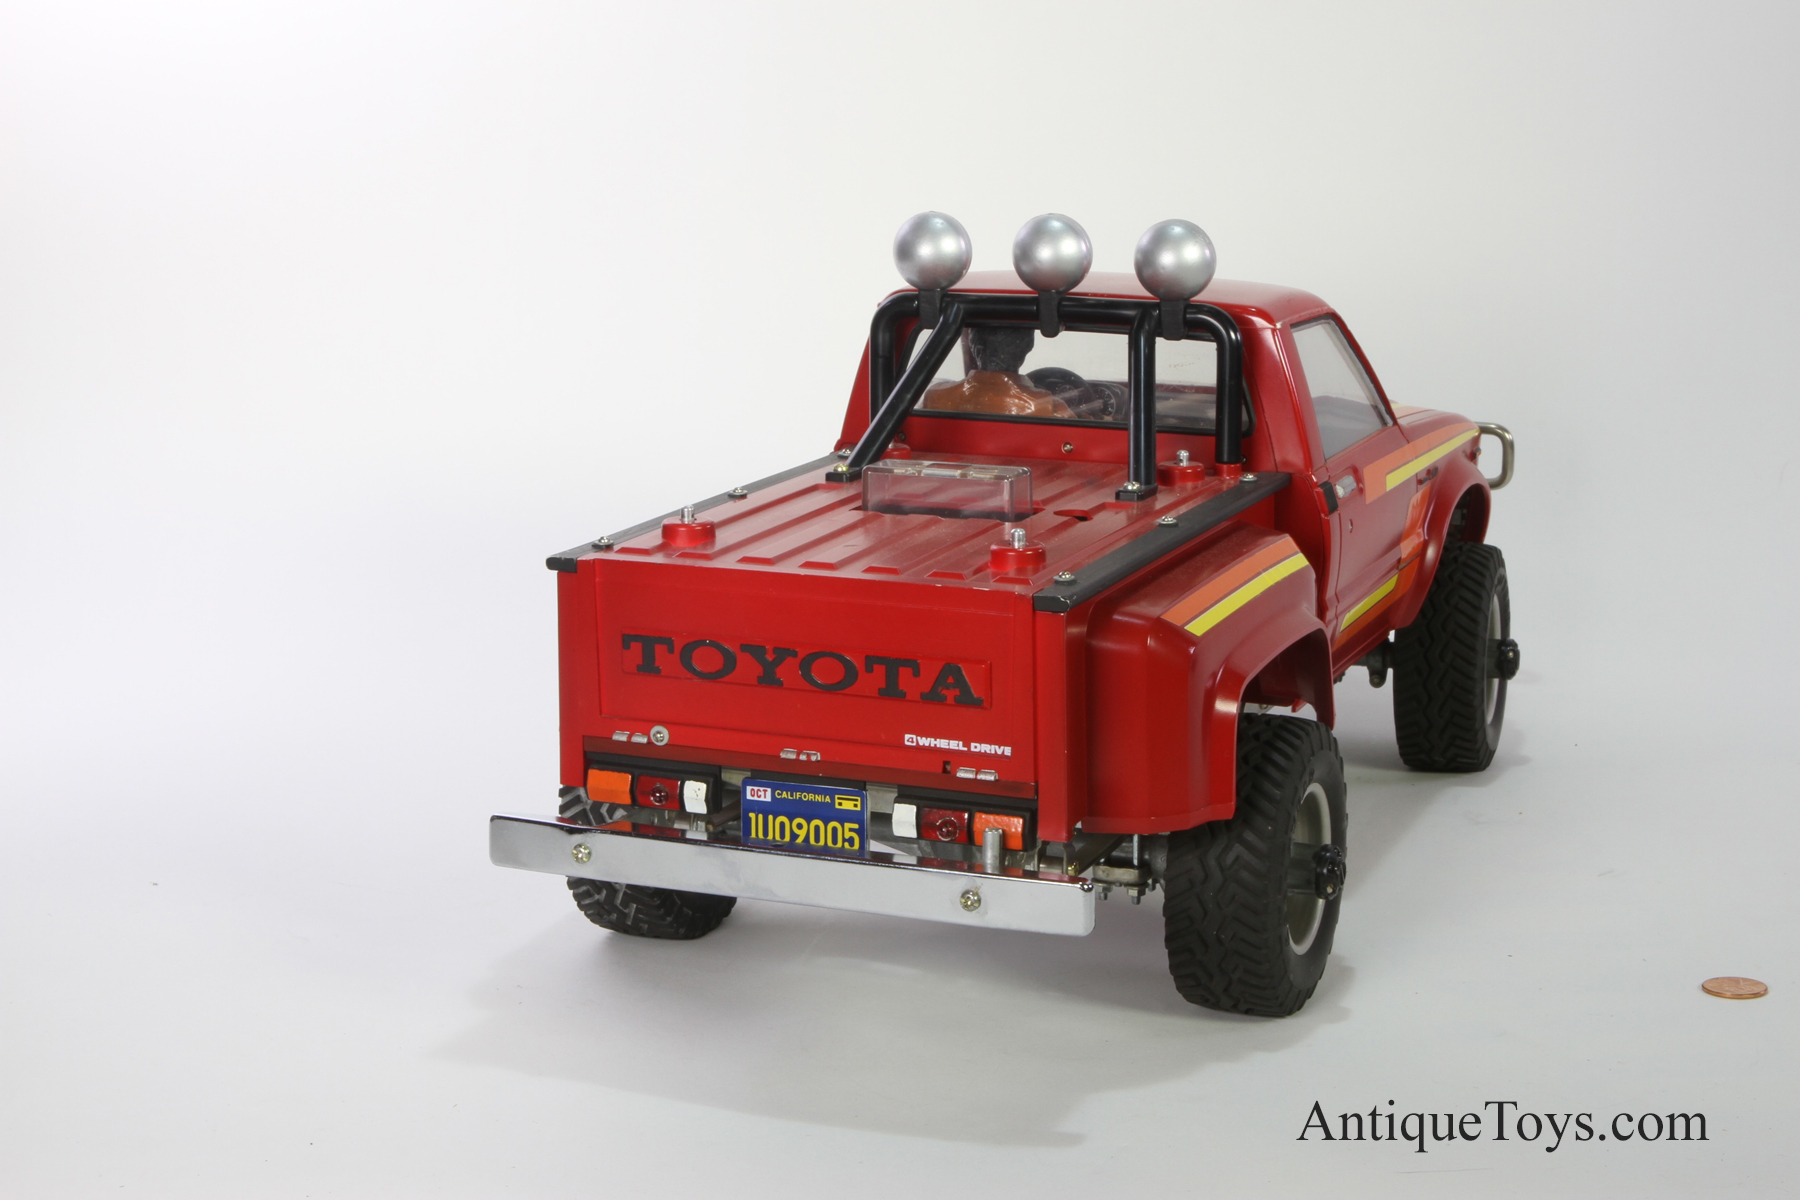 hobby horse rc with Tamiya Toyota 4x4 Rc Helix Truck Up Ing Antique on hobbyflip p10421x Drone Nano H107r Lipo 37v Usb Battery Charger Any Mah Auto Shut Off W Led additionally Joysway 8301 Red Bullet Rc Speed Boat in addition 251354218471 also T40 20instruction 20manual furthermore Joysway 6106 Smart K V2 Rc Glider Mode 2.